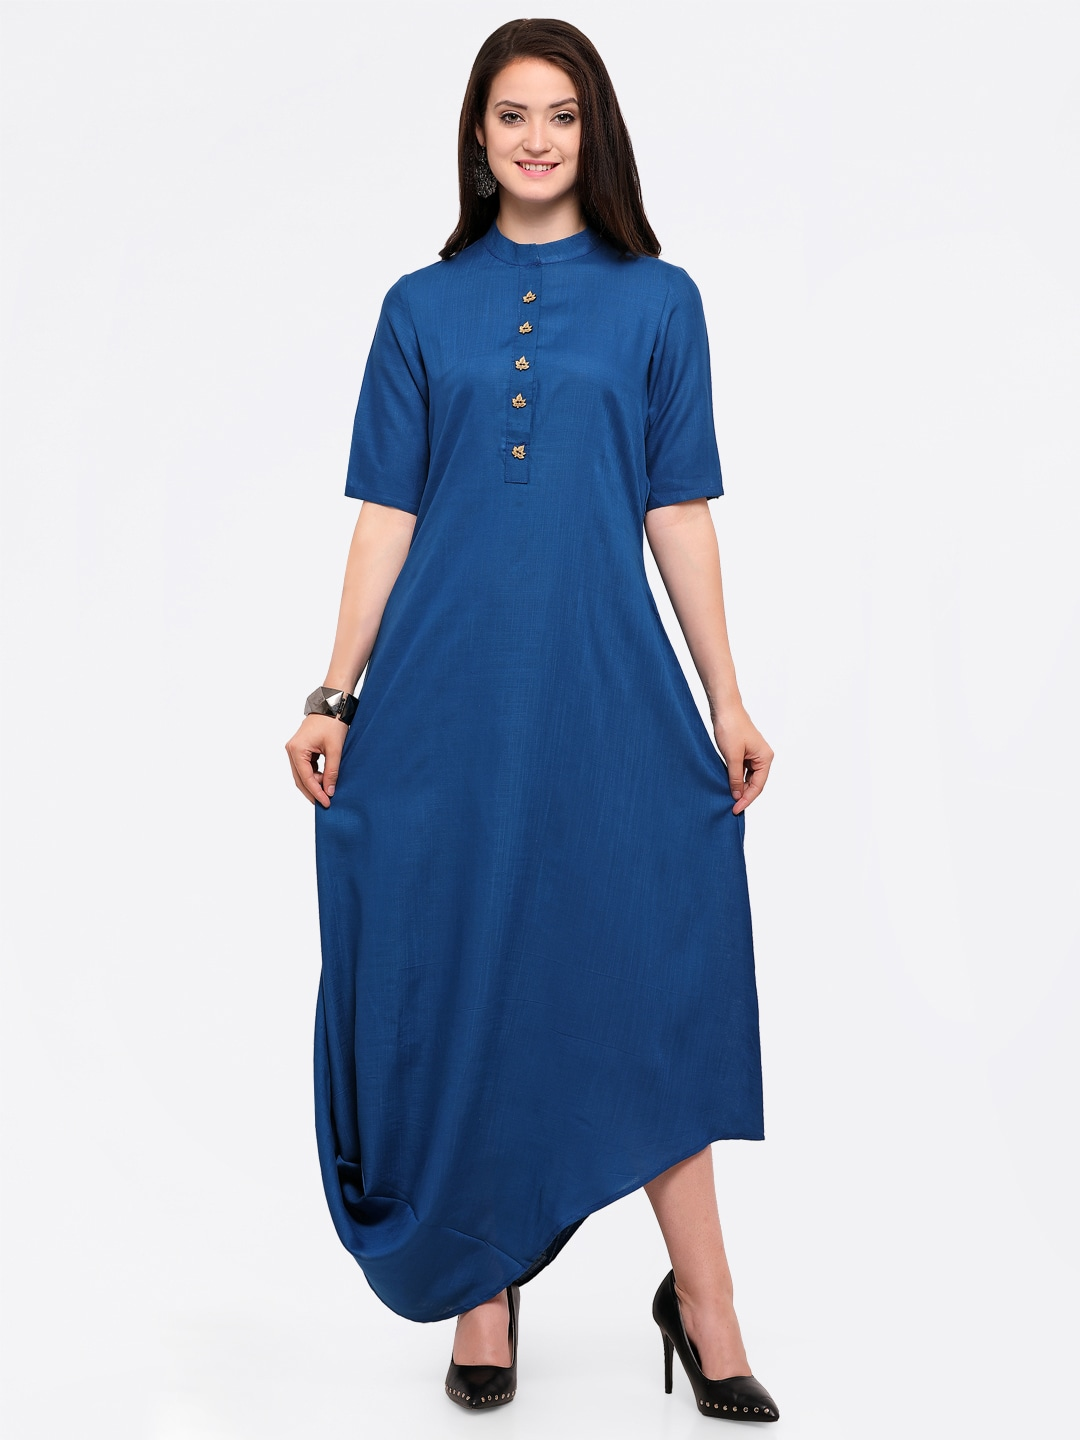 2b07dee64ae Inddus Navy Blue Solid Maxi Dress for women price in India on 1st ...